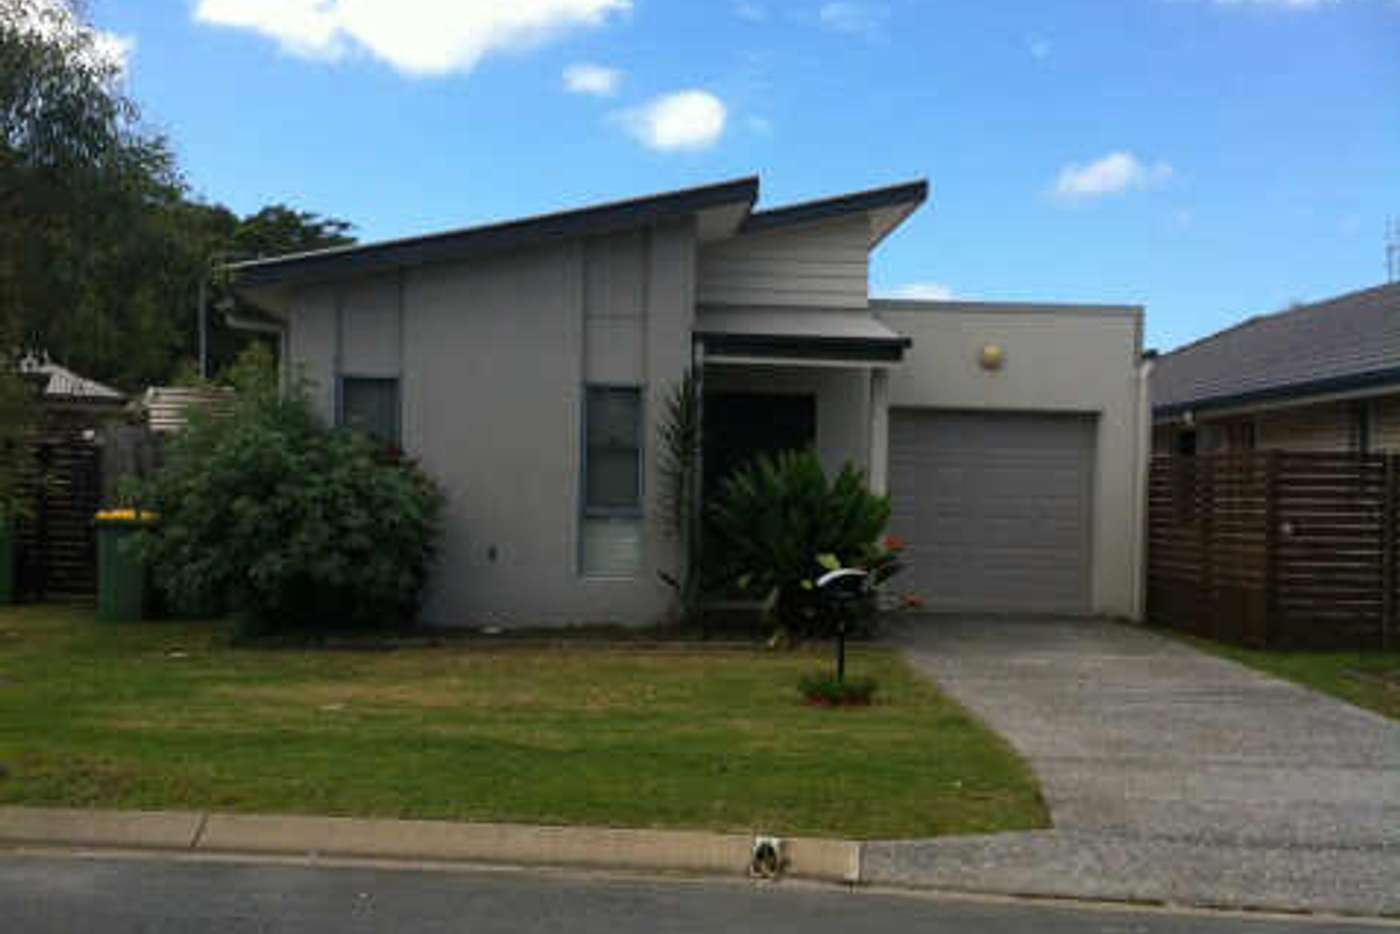 Main view of Homely house listing, 6 Joshua Close, Little Mountain QLD 4551